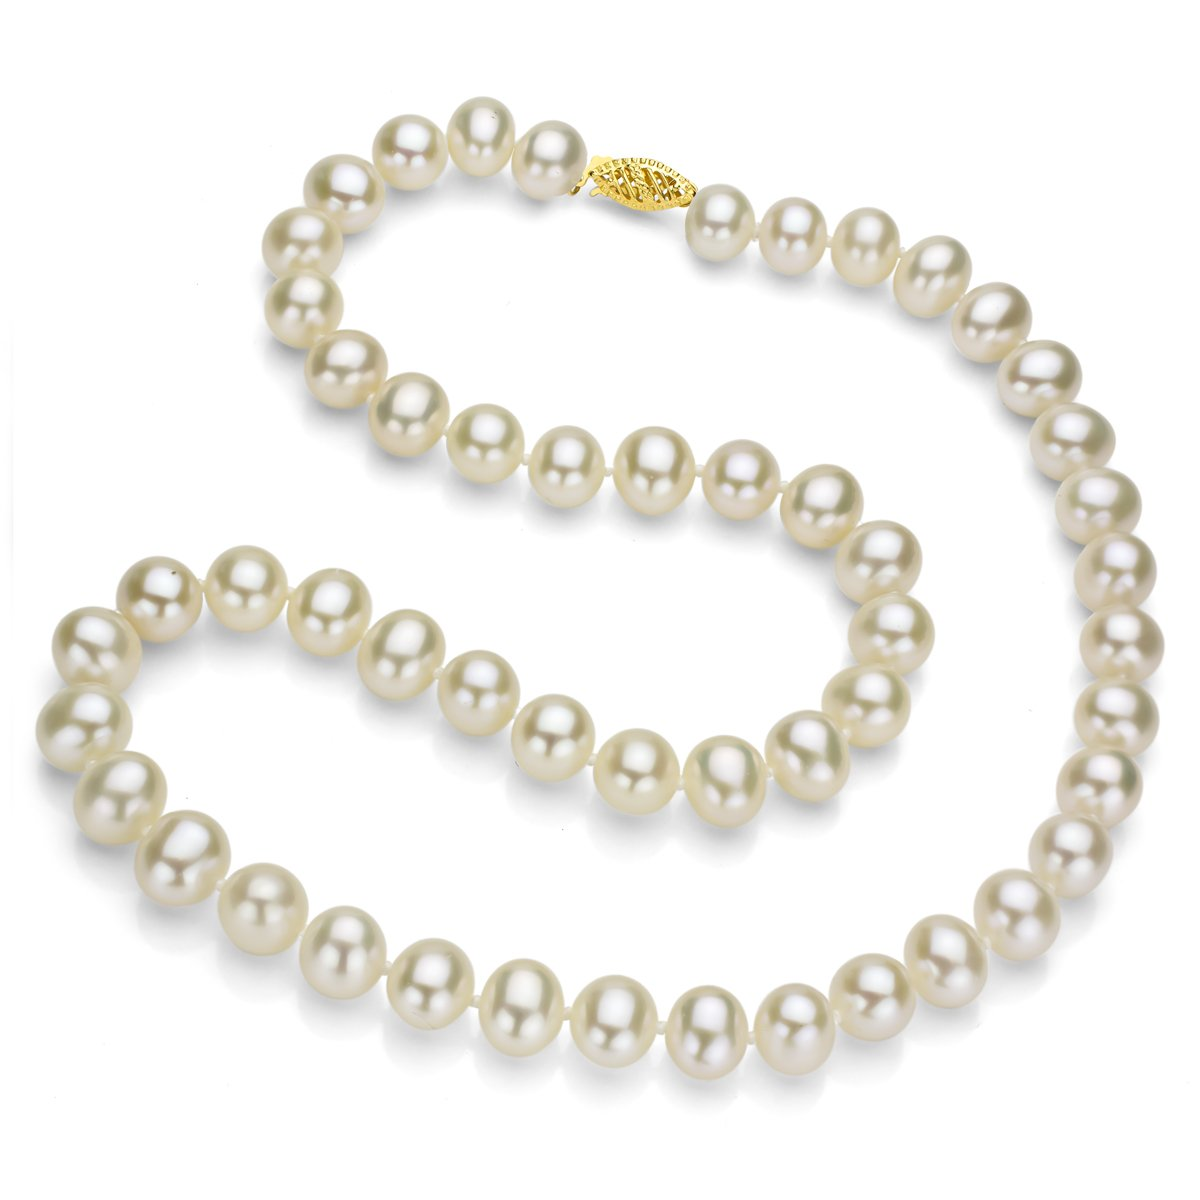 14k Yellow Gold 5.5-6mm White Freshwater Cultured High Luster Pearl Choker Necklace, 16''